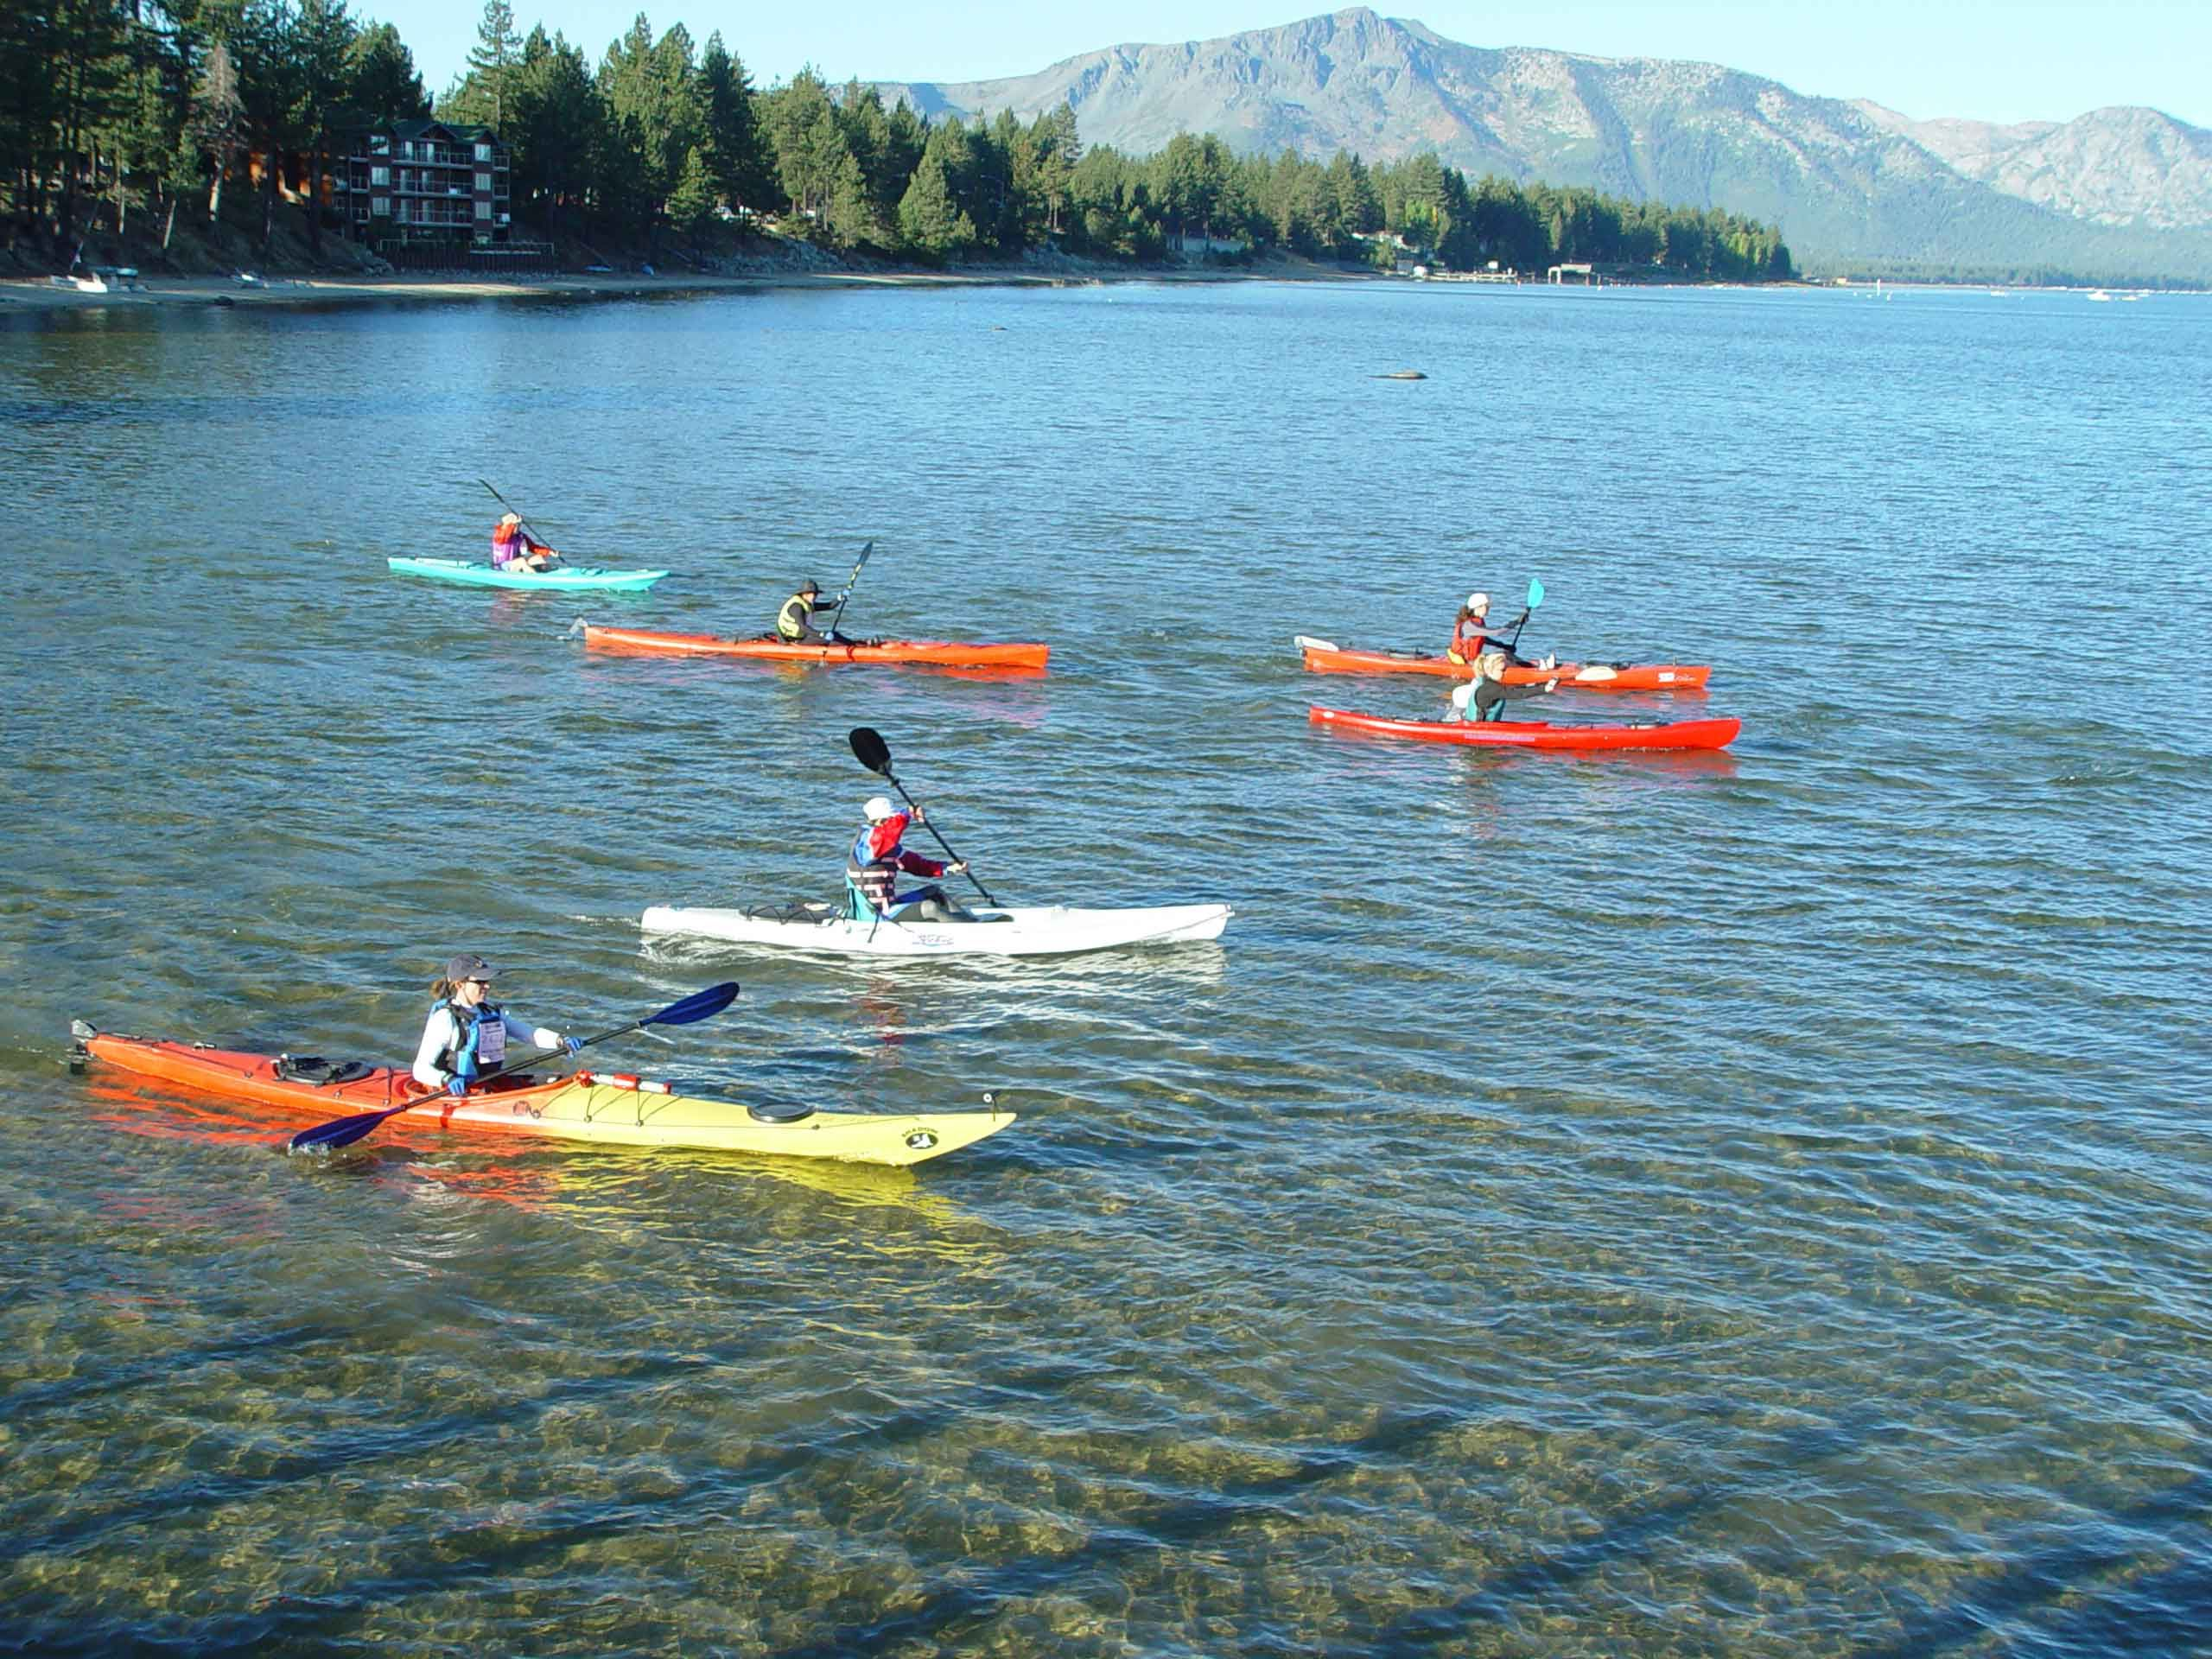 Lake tahoe most beautiful place to kayak come and visit